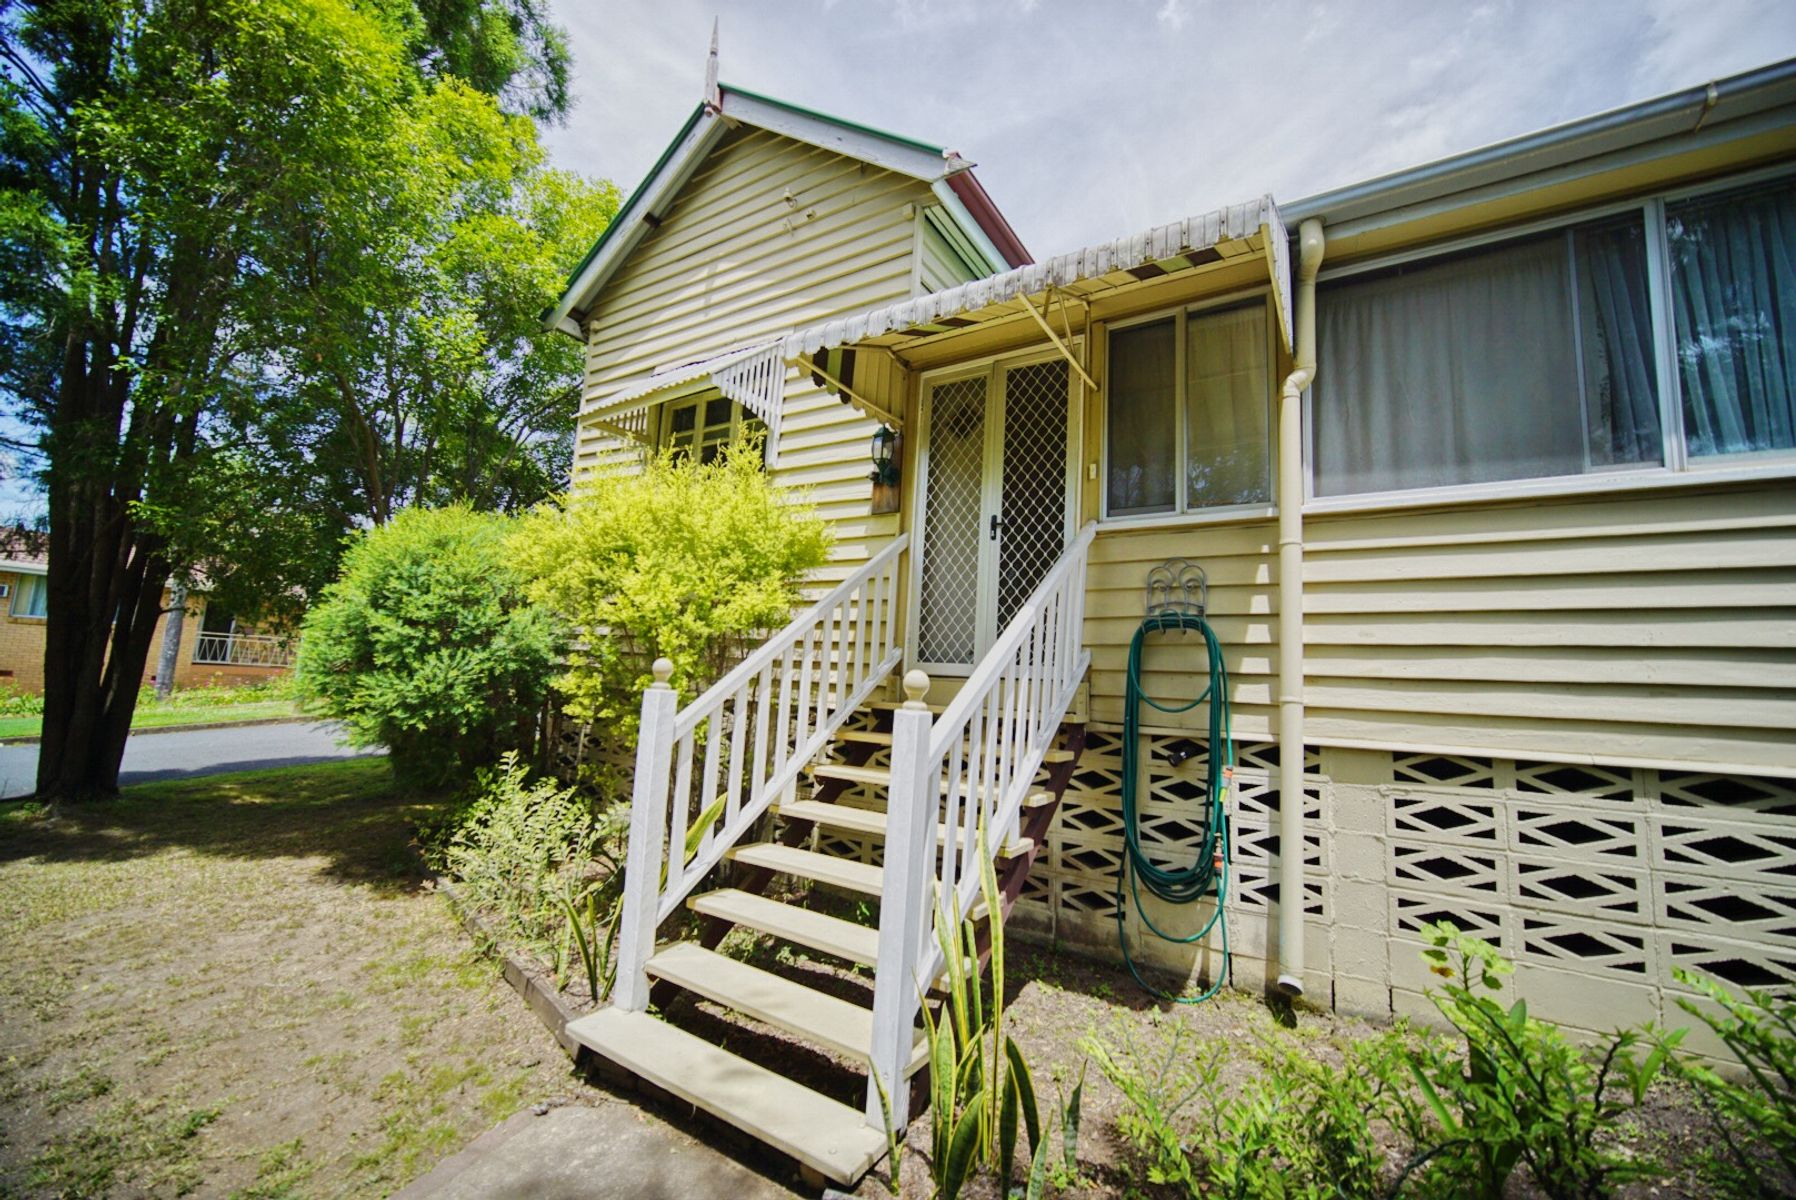 69 Crescent Road, Gympie, QLD 4570